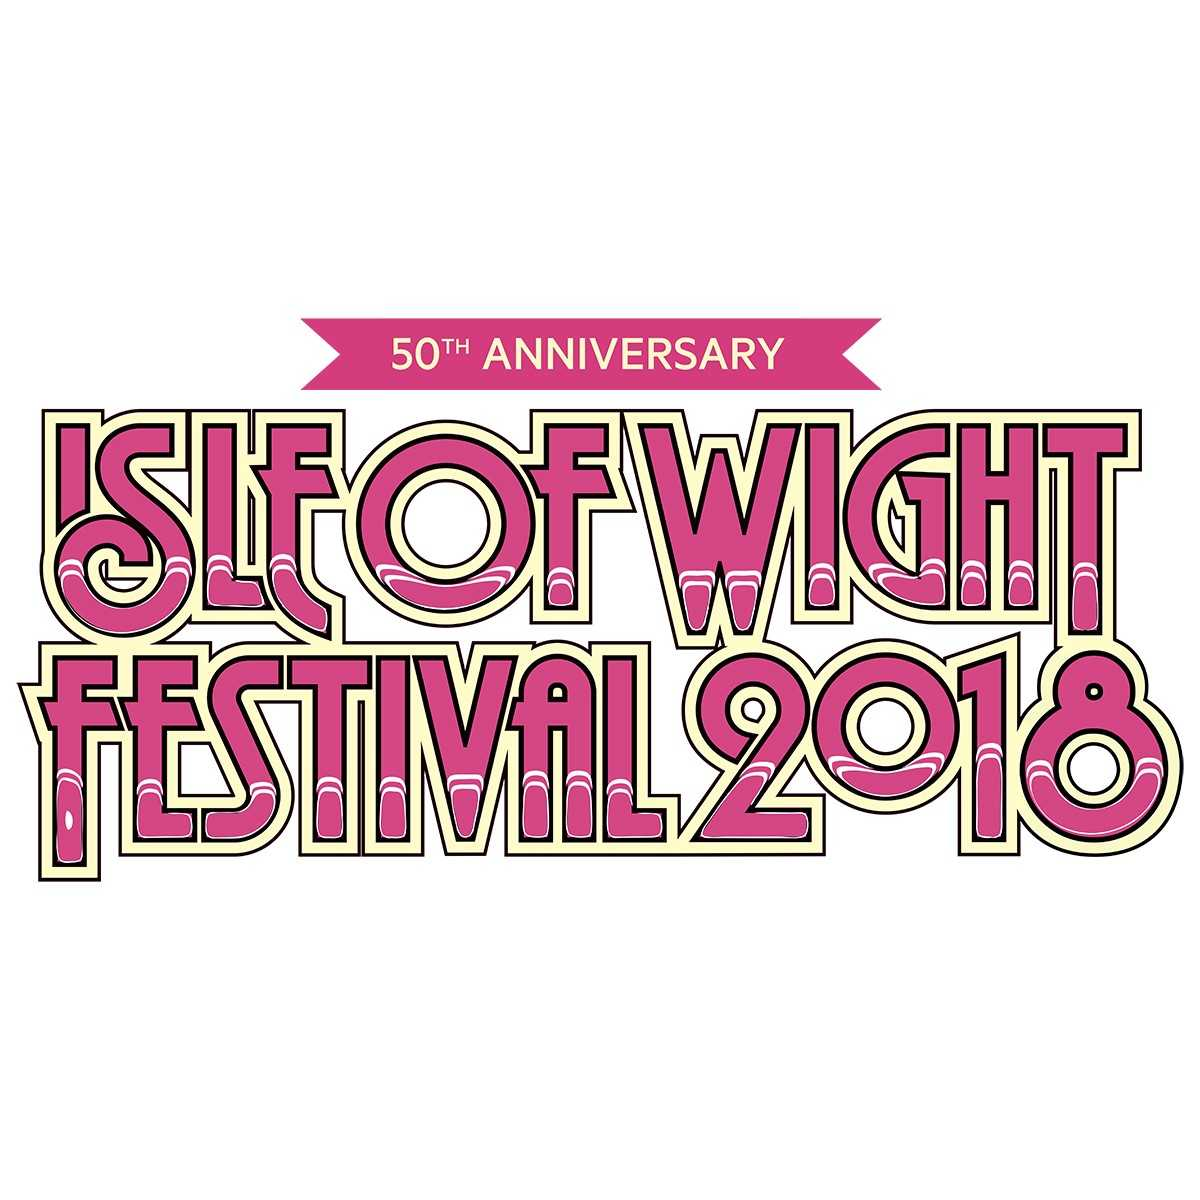 The Isle of Wight Festival takes place at Seaclose Park in June.